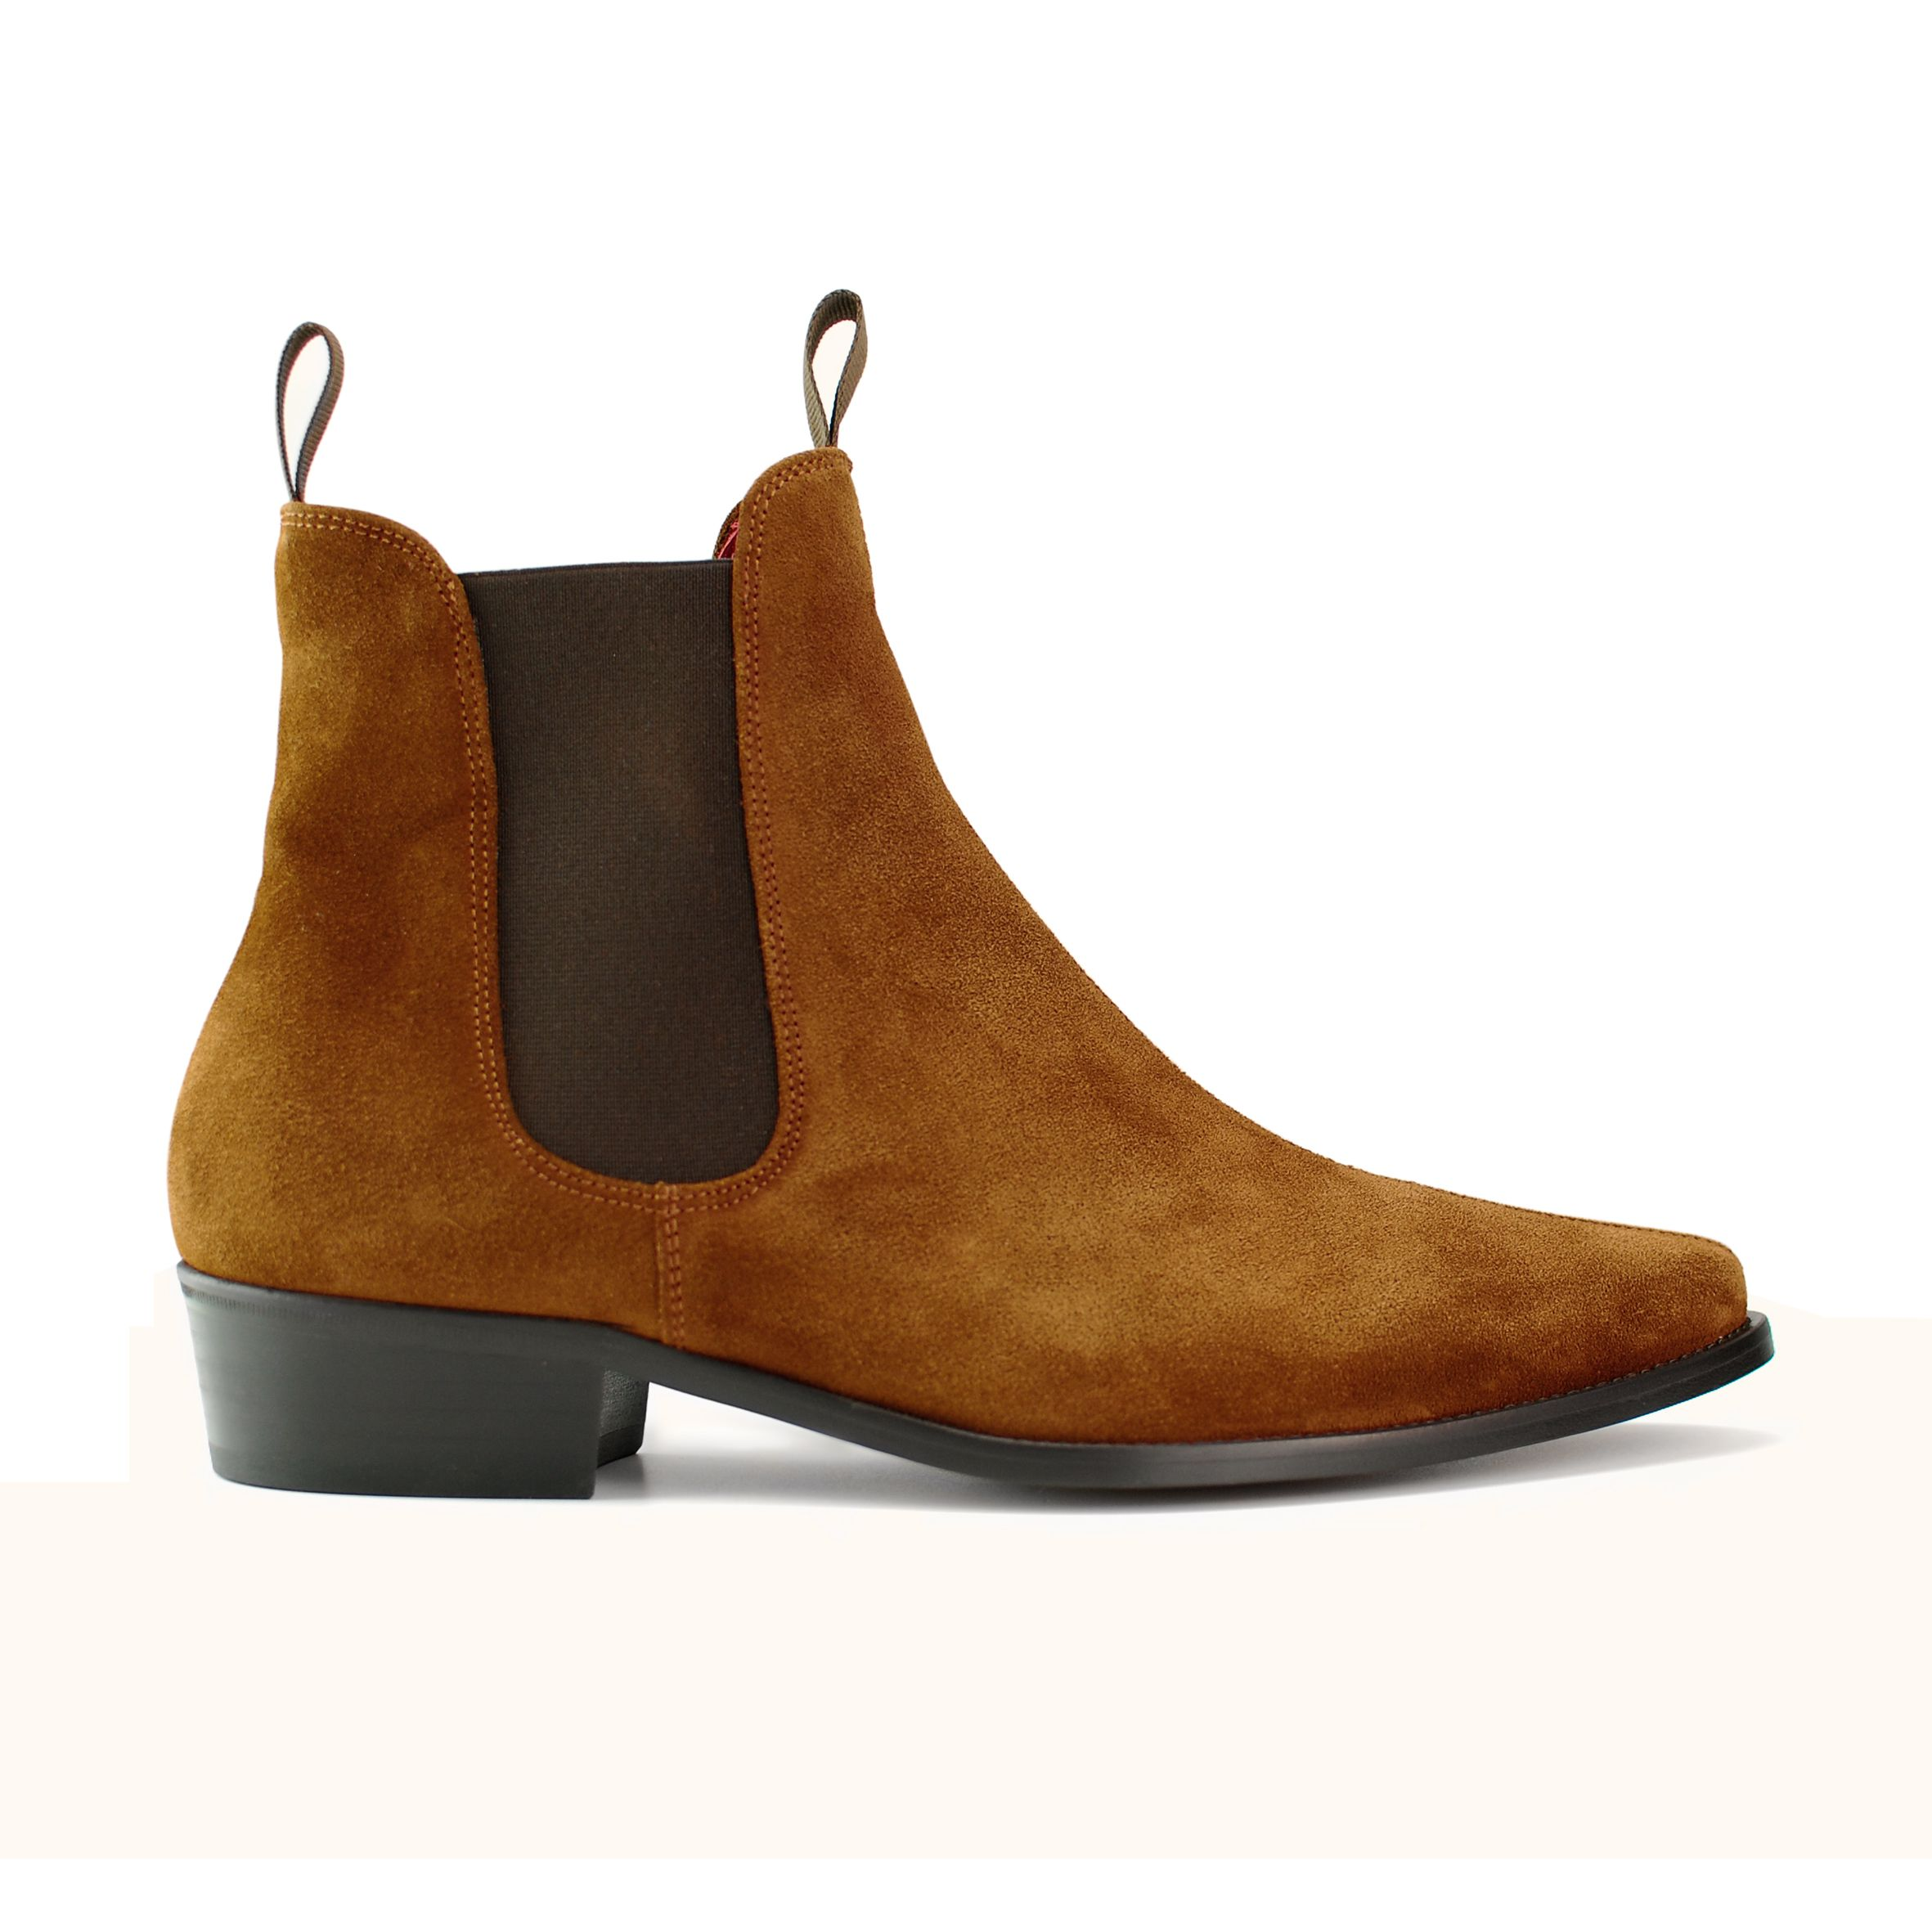 classic suede boot coloured beatle boots at beatwear